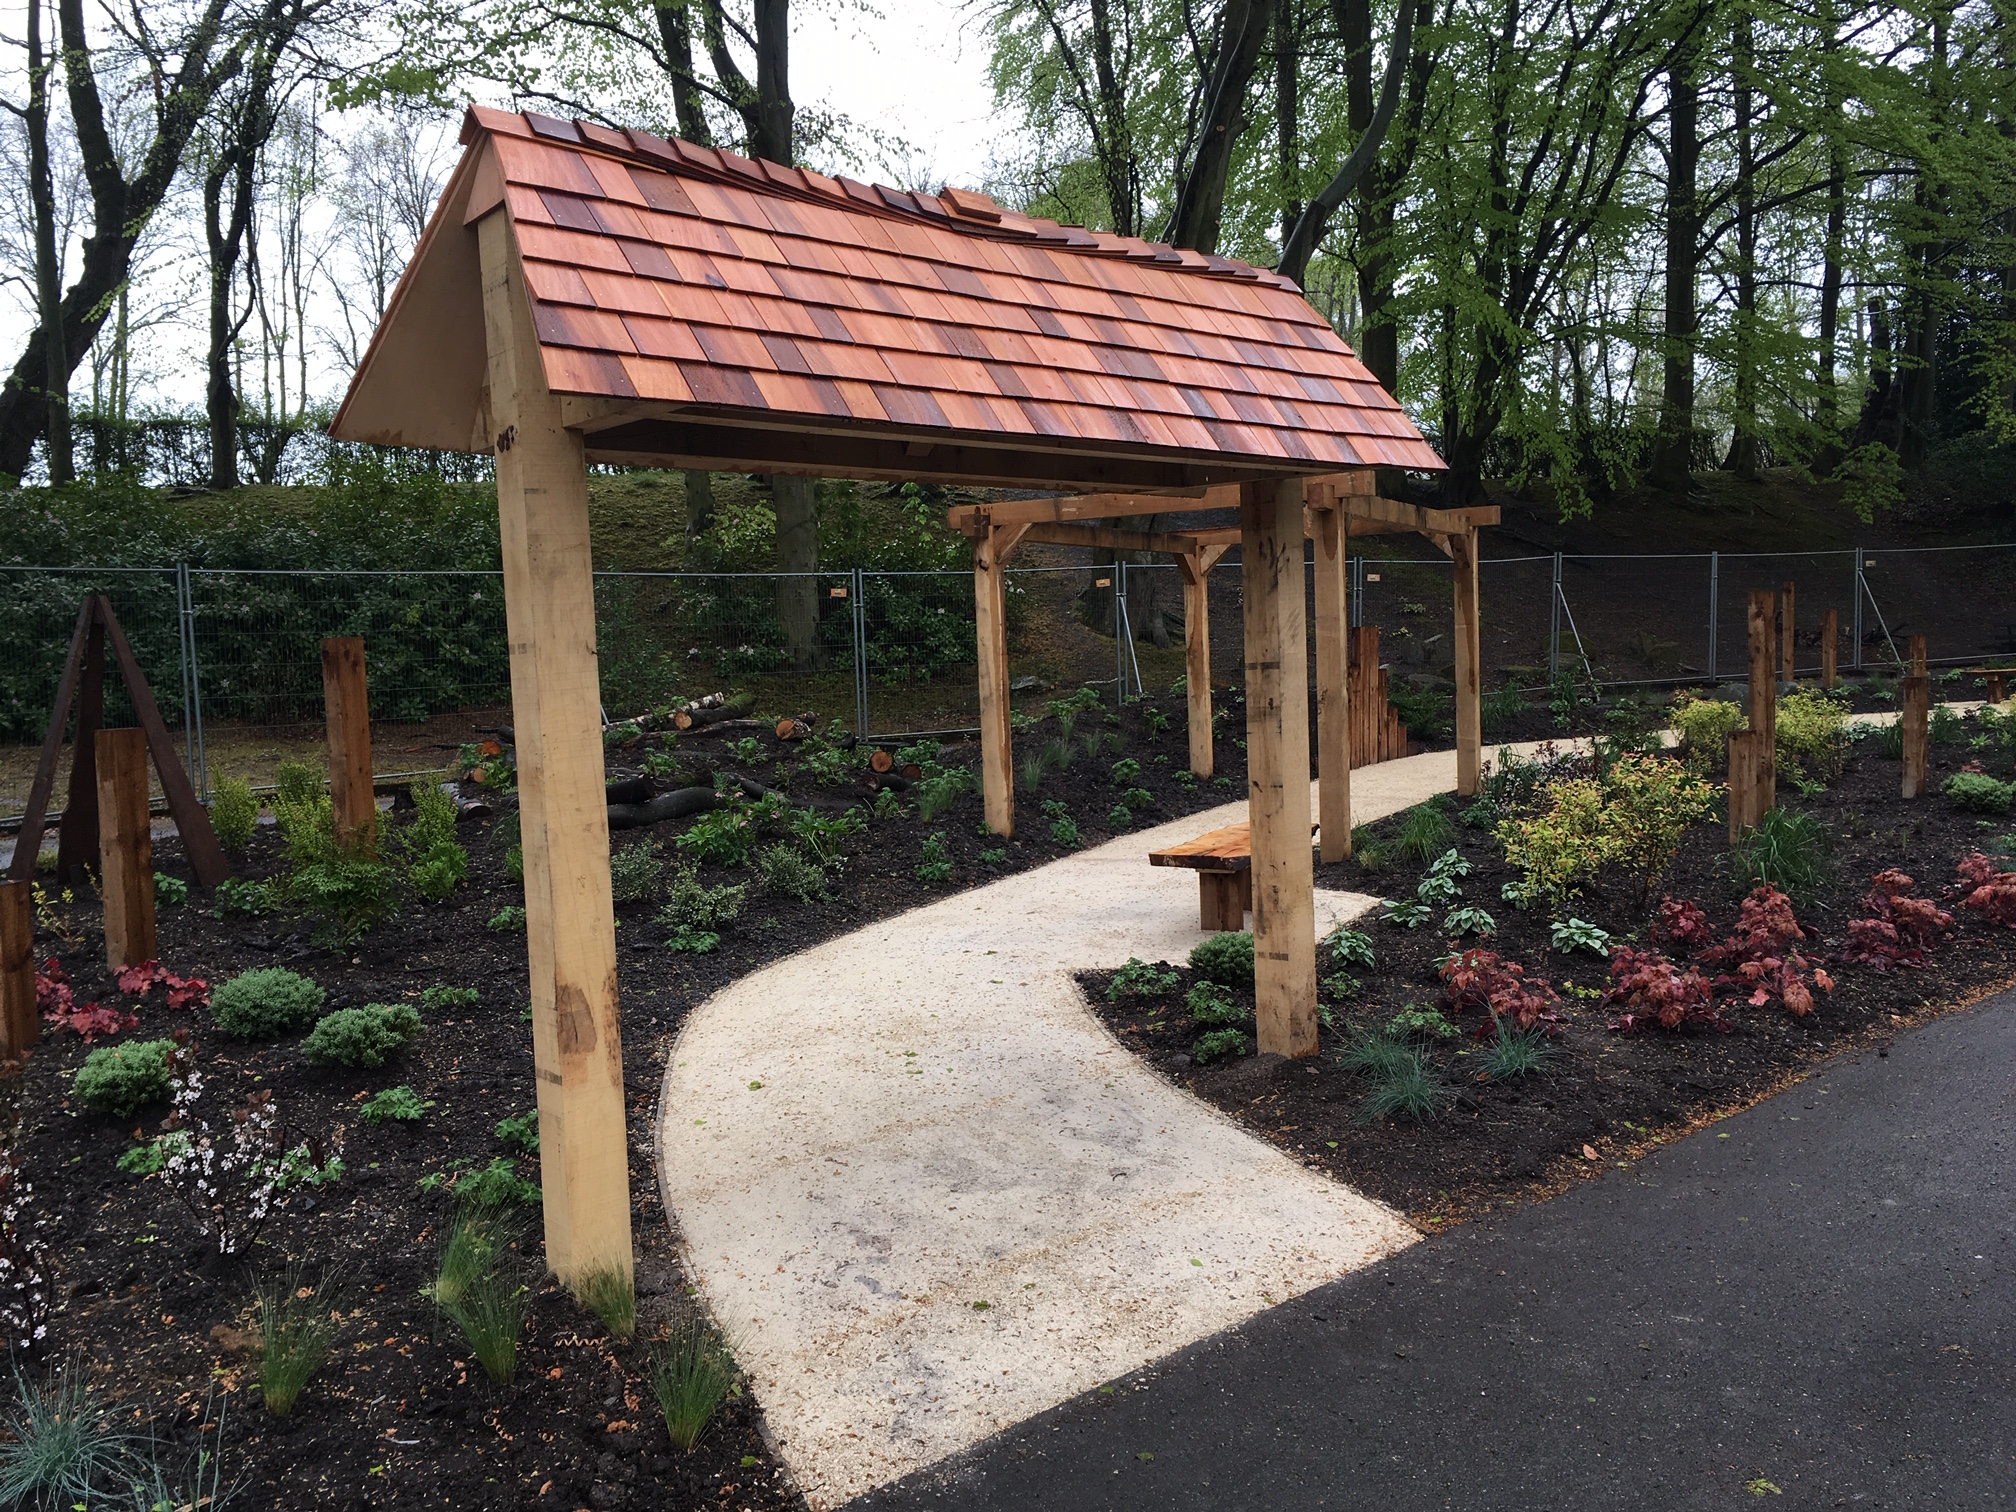 Willenhall Park Memorial Garden - Featured on BBC Midlands Today